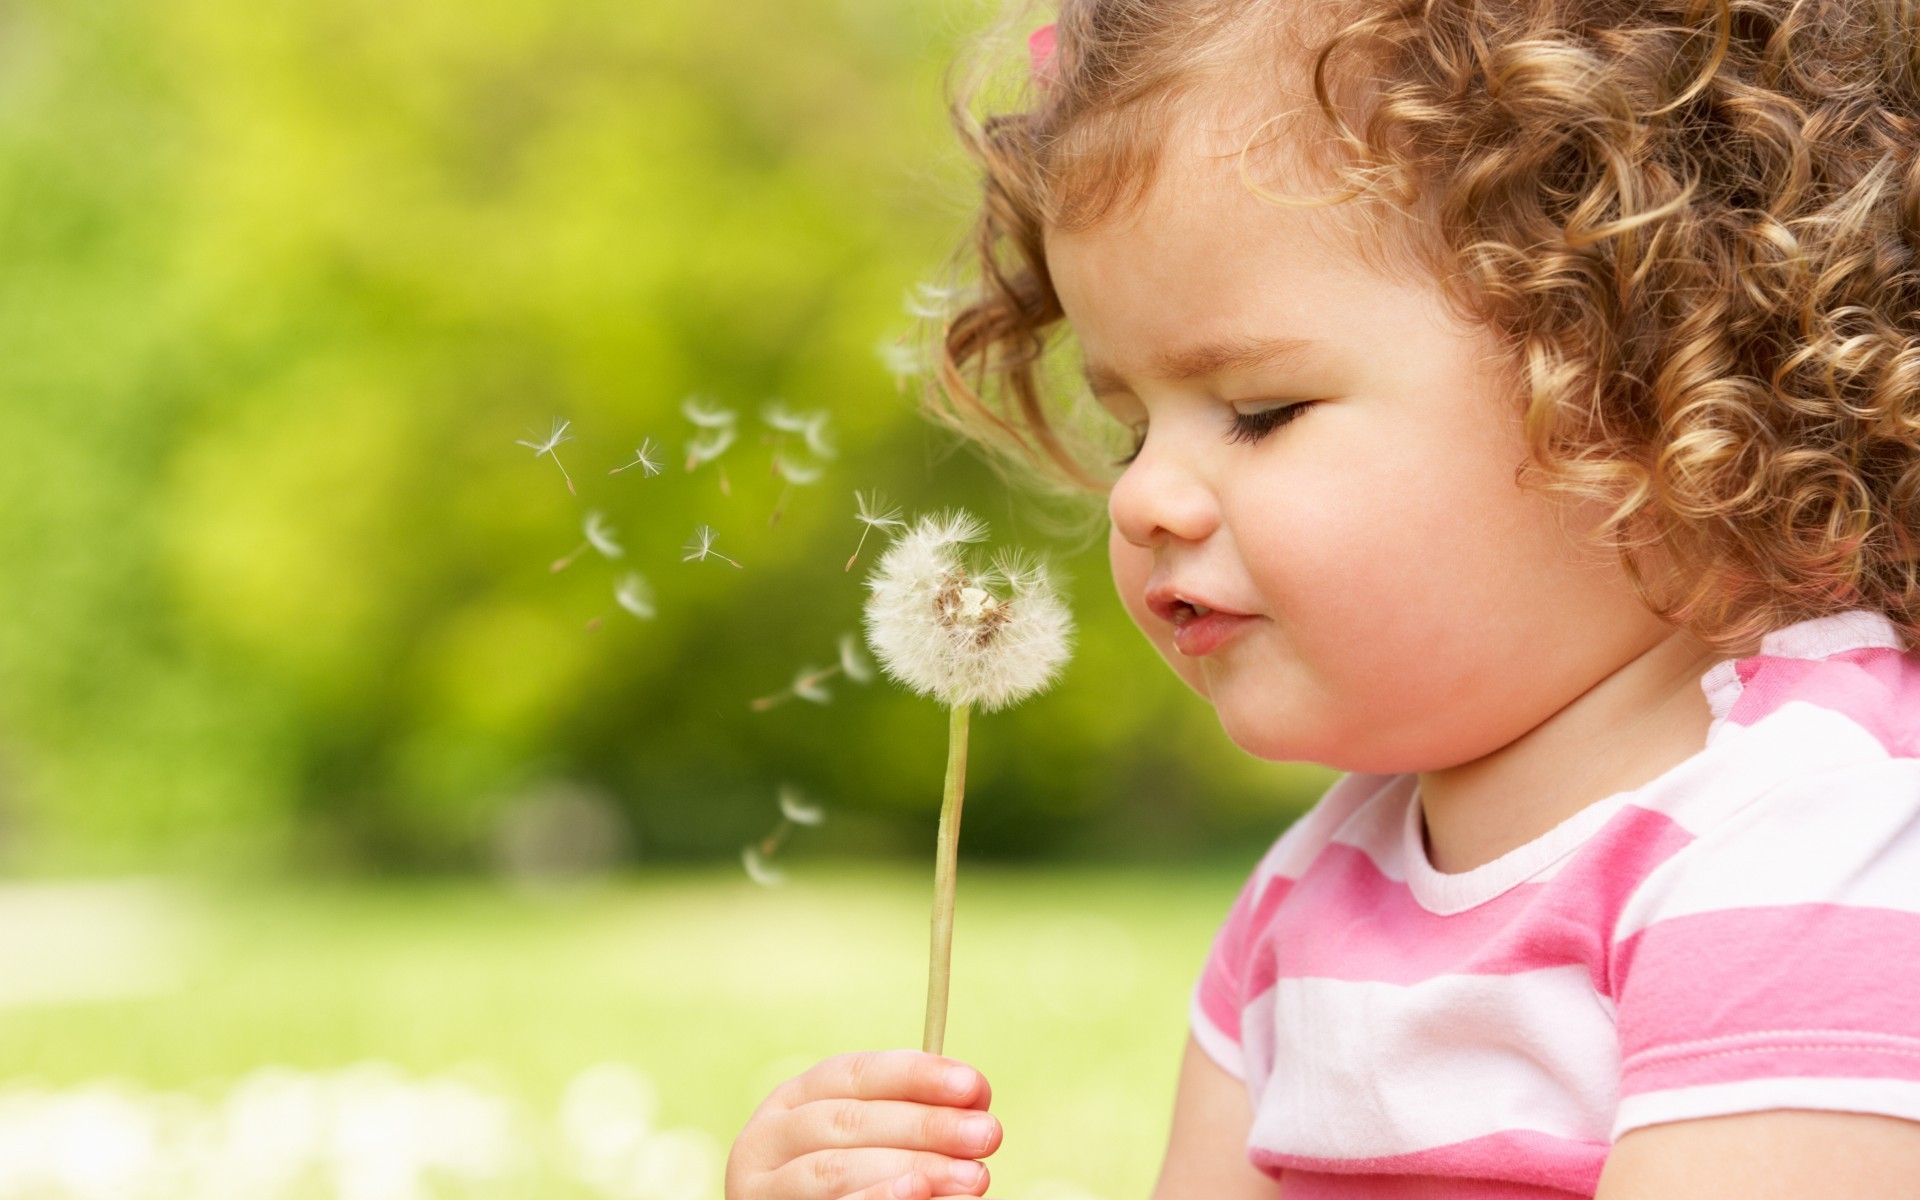 A Curly Child Blowing a Dandelion 238.46 Kb